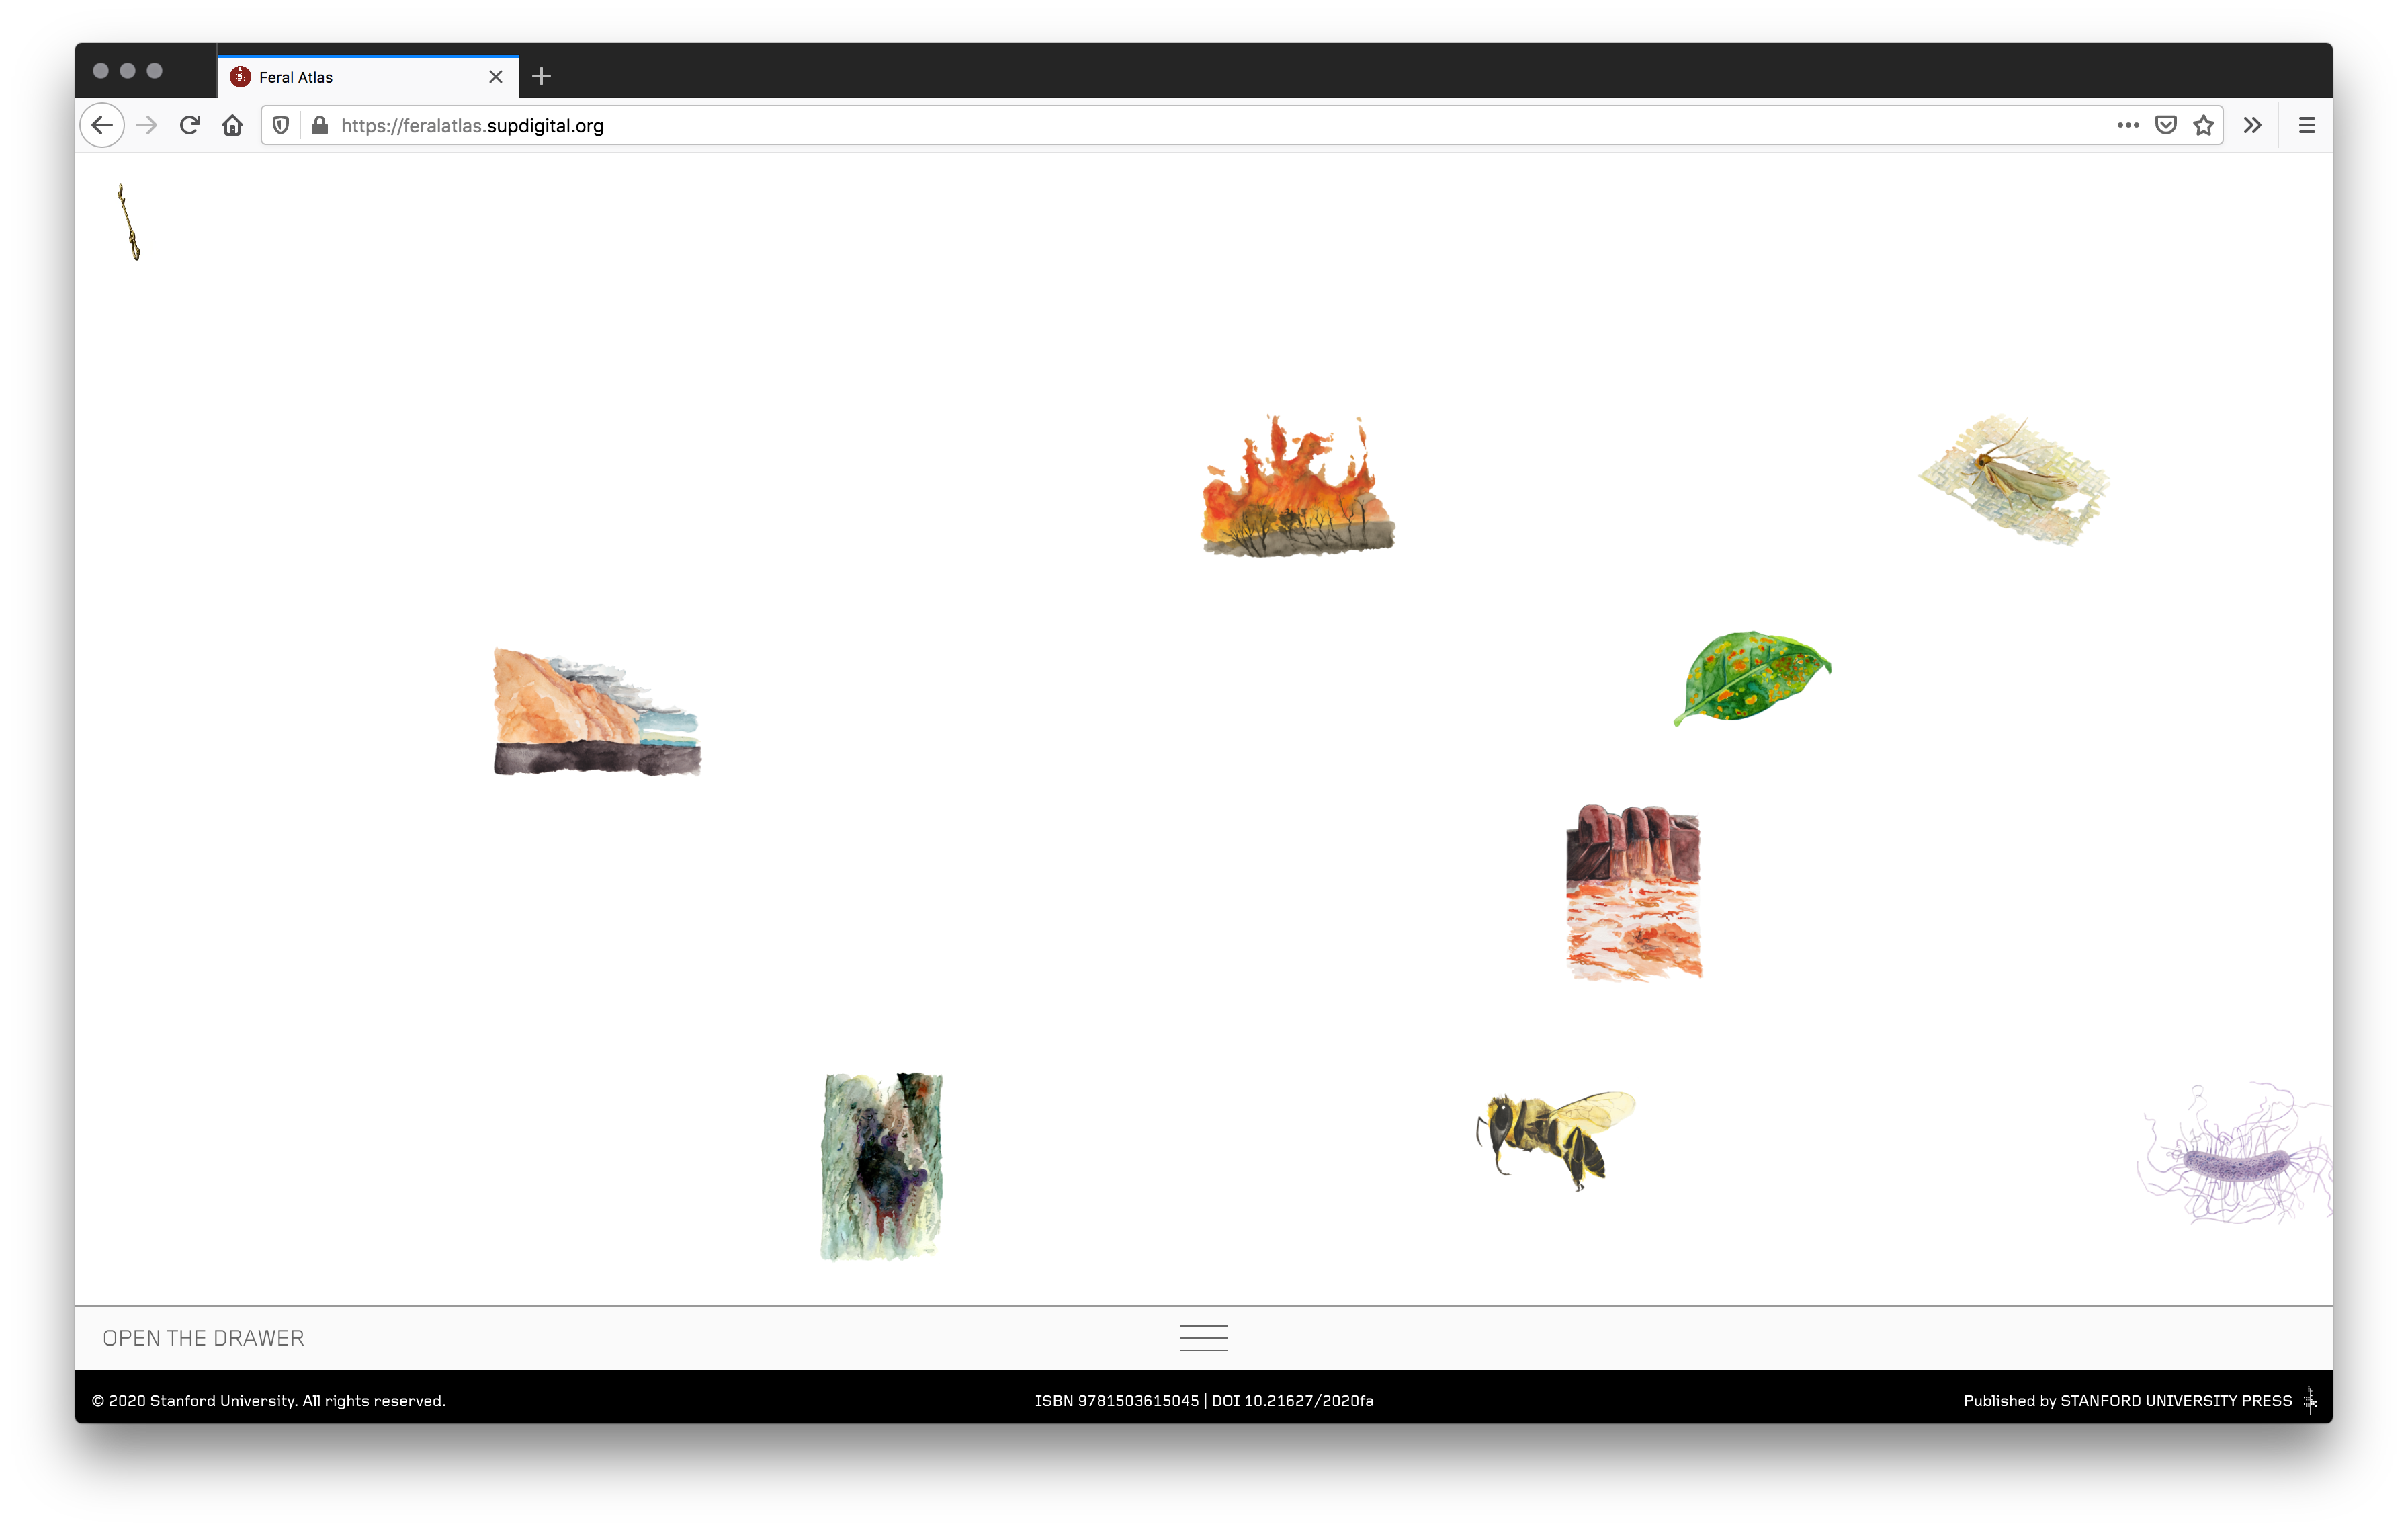 A screenshot of the Feral Atlas homepage shows floating images of wildfires, bees, leaves, and bacteria.